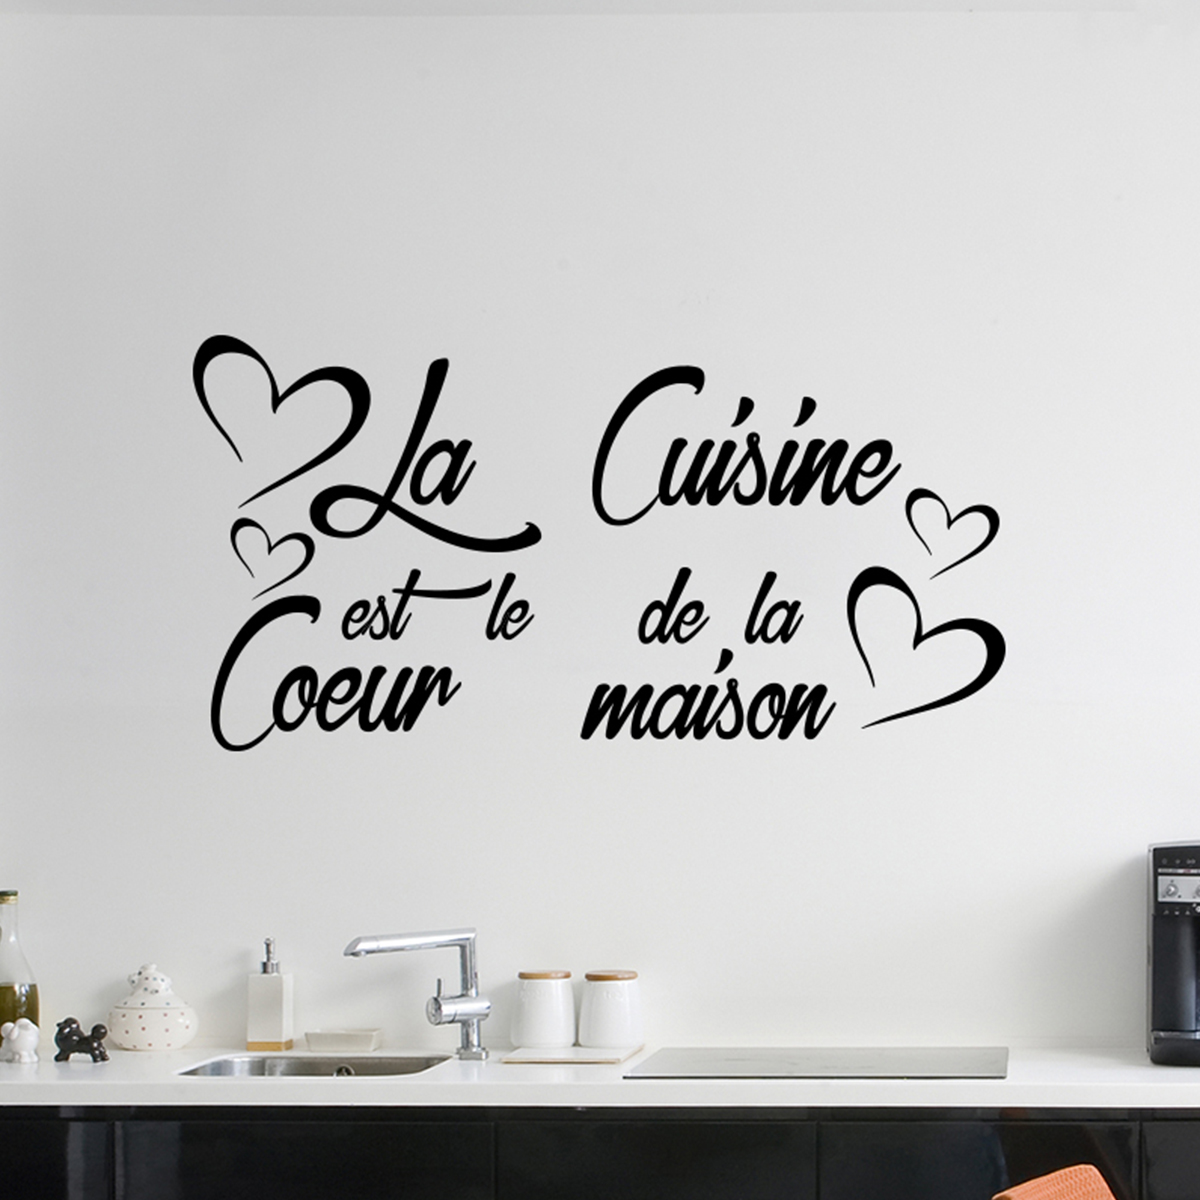 Decoration Murale Citation Sticker Citation La Cuisine Est Le Coeur De La Maison